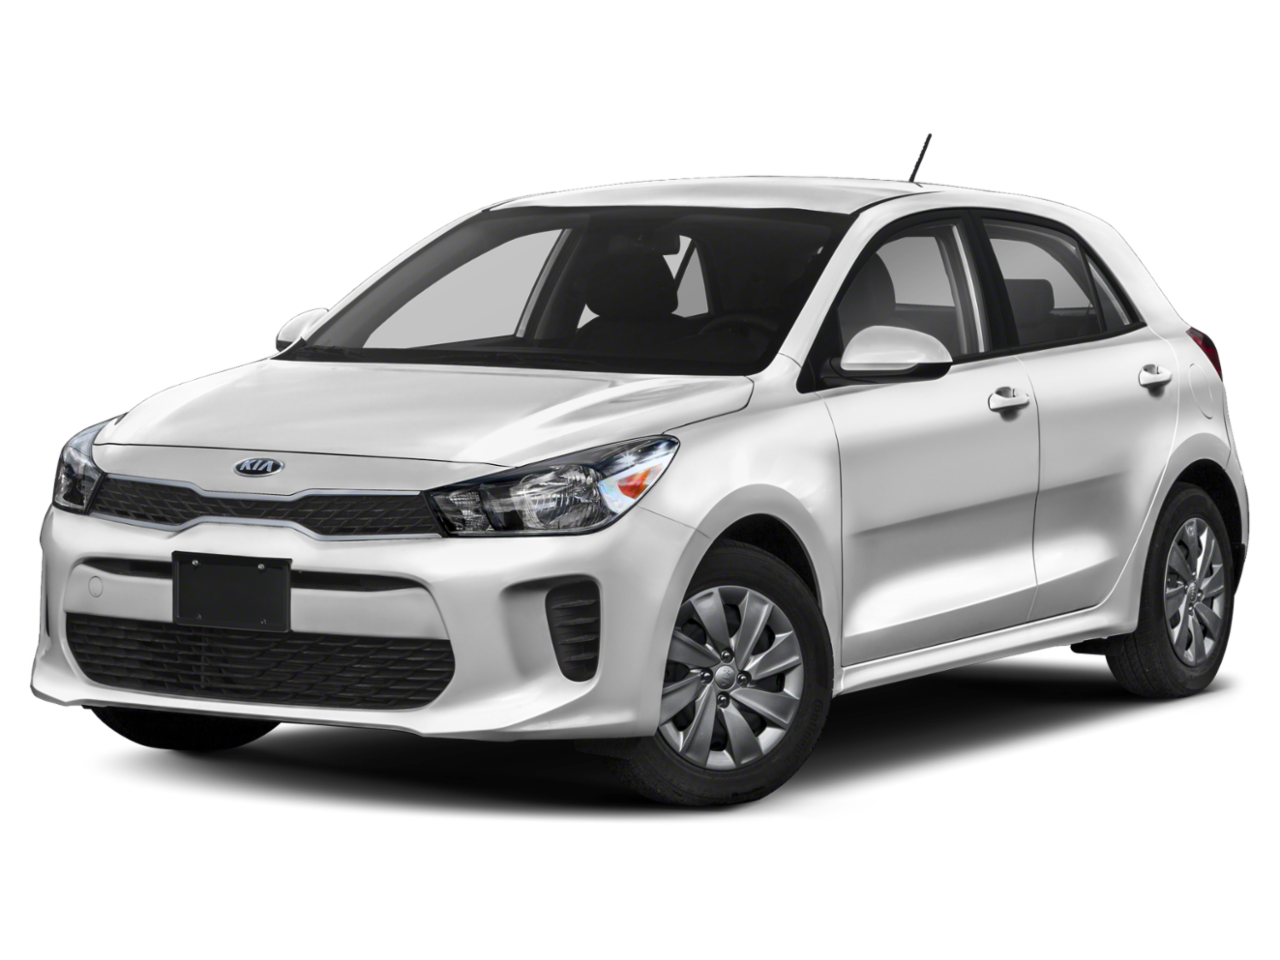 Buyer's Guide: 2019 Kia Rio 5-door